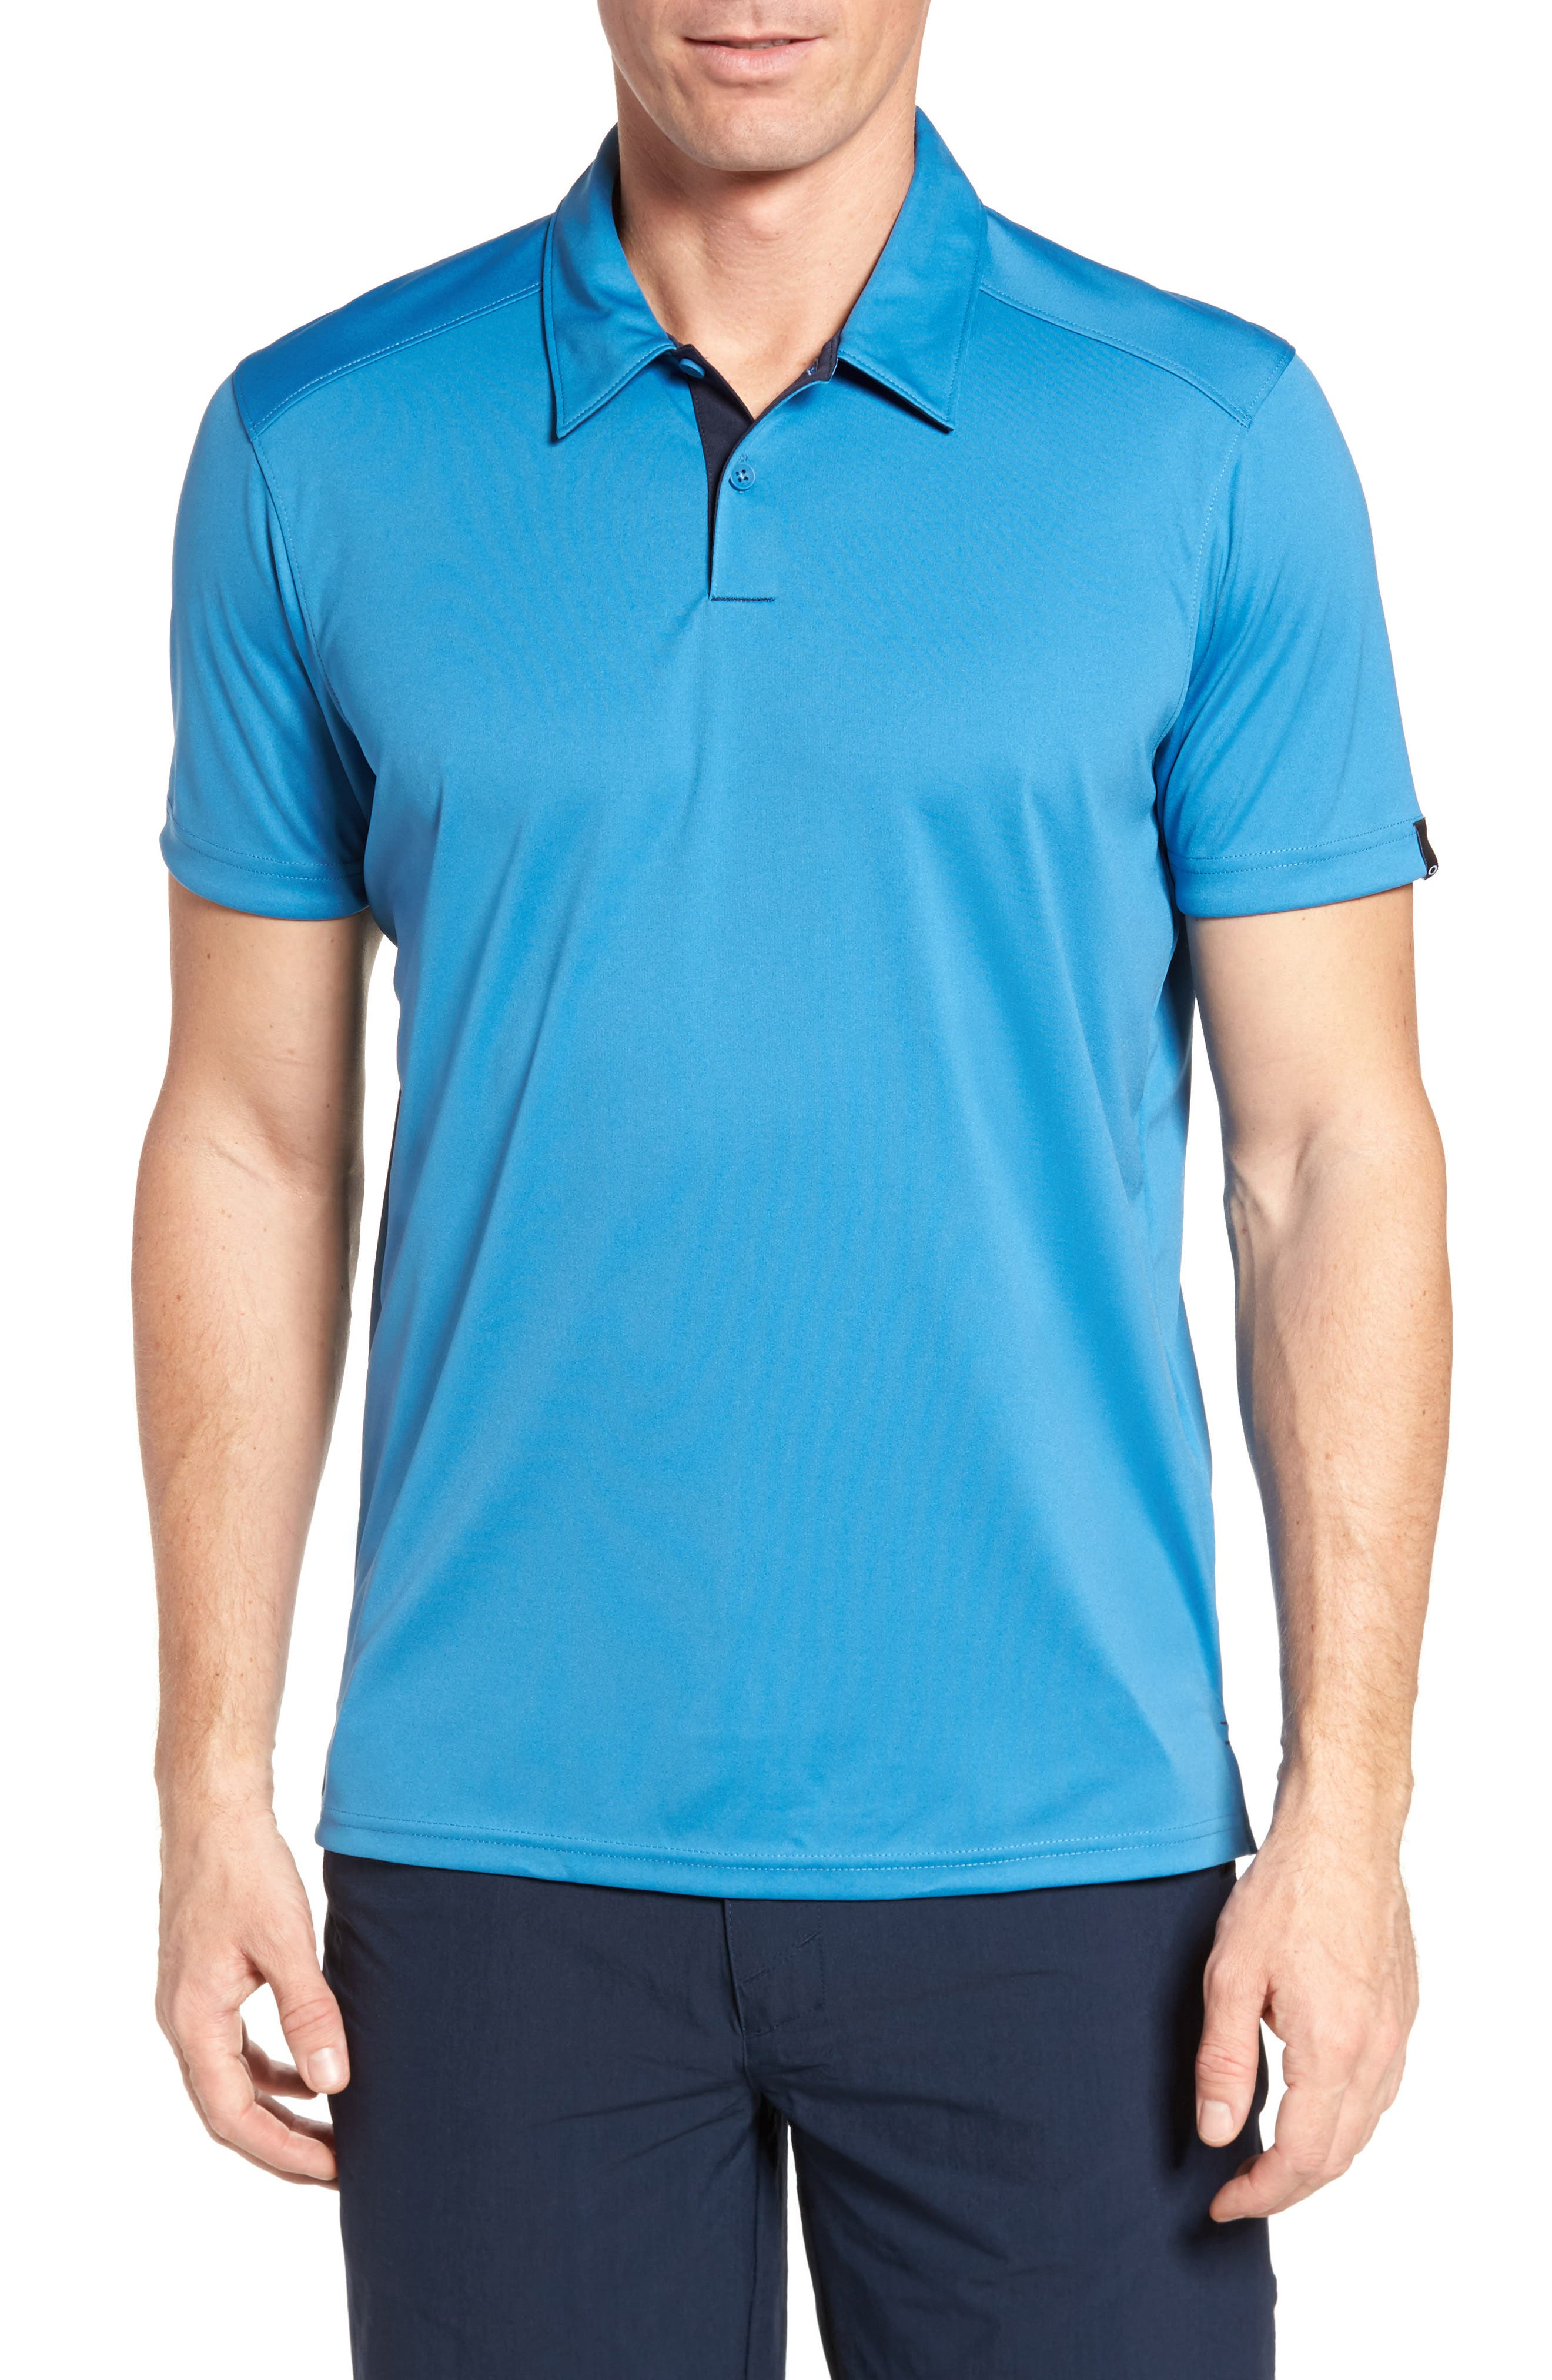 Oakley Divisional Polo Shirt